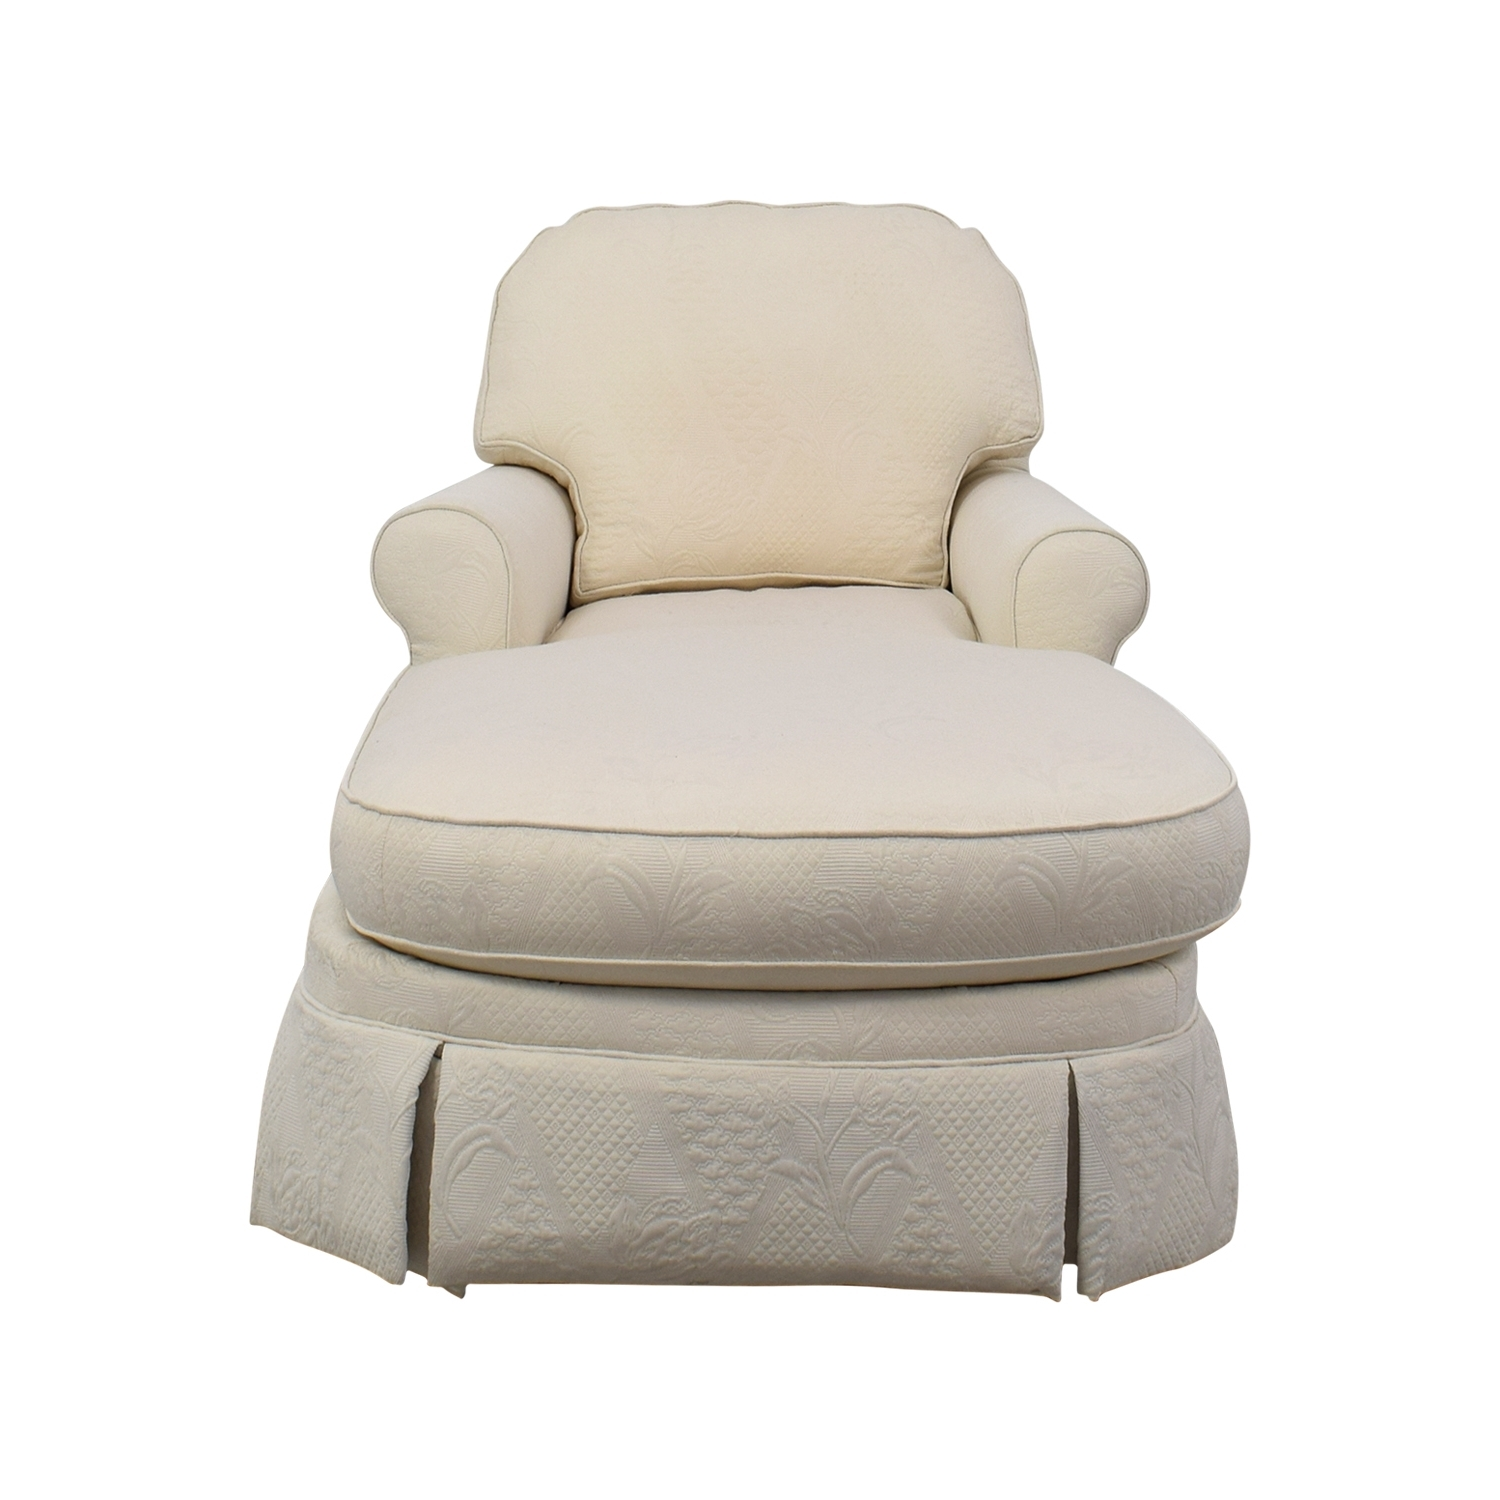 [%85% Off – Ethan Allen Ethan Allen Victoria White Chaise Lounge / Sofas In 2018 White Chaises|White Chaises Inside Latest 85% Off – Ethan Allen Ethan Allen Victoria White Chaise Lounge / Sofas|Most Popular White Chaises Within 85% Off – Ethan Allen Ethan Allen Victoria White Chaise Lounge / Sofas|Popular 85% Off – Ethan Allen Ethan Allen Victoria White Chaise Lounge / Sofas Intended For White Chaises%] (View 7 of 15)